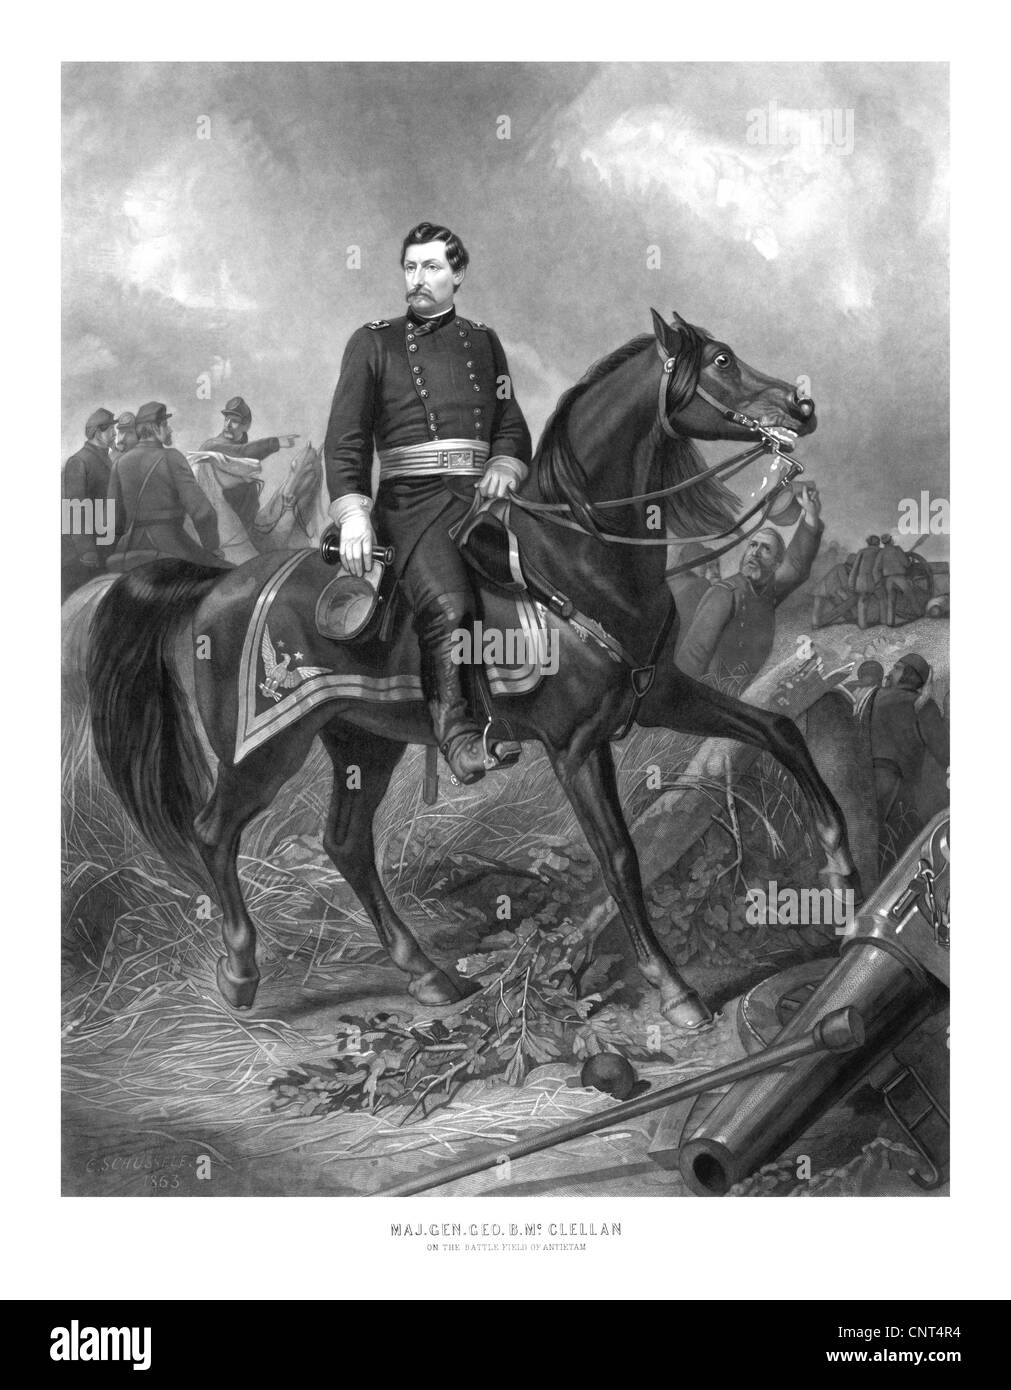 Vintage Civil War print of Union General George McClellan on horseback. - Stock Image